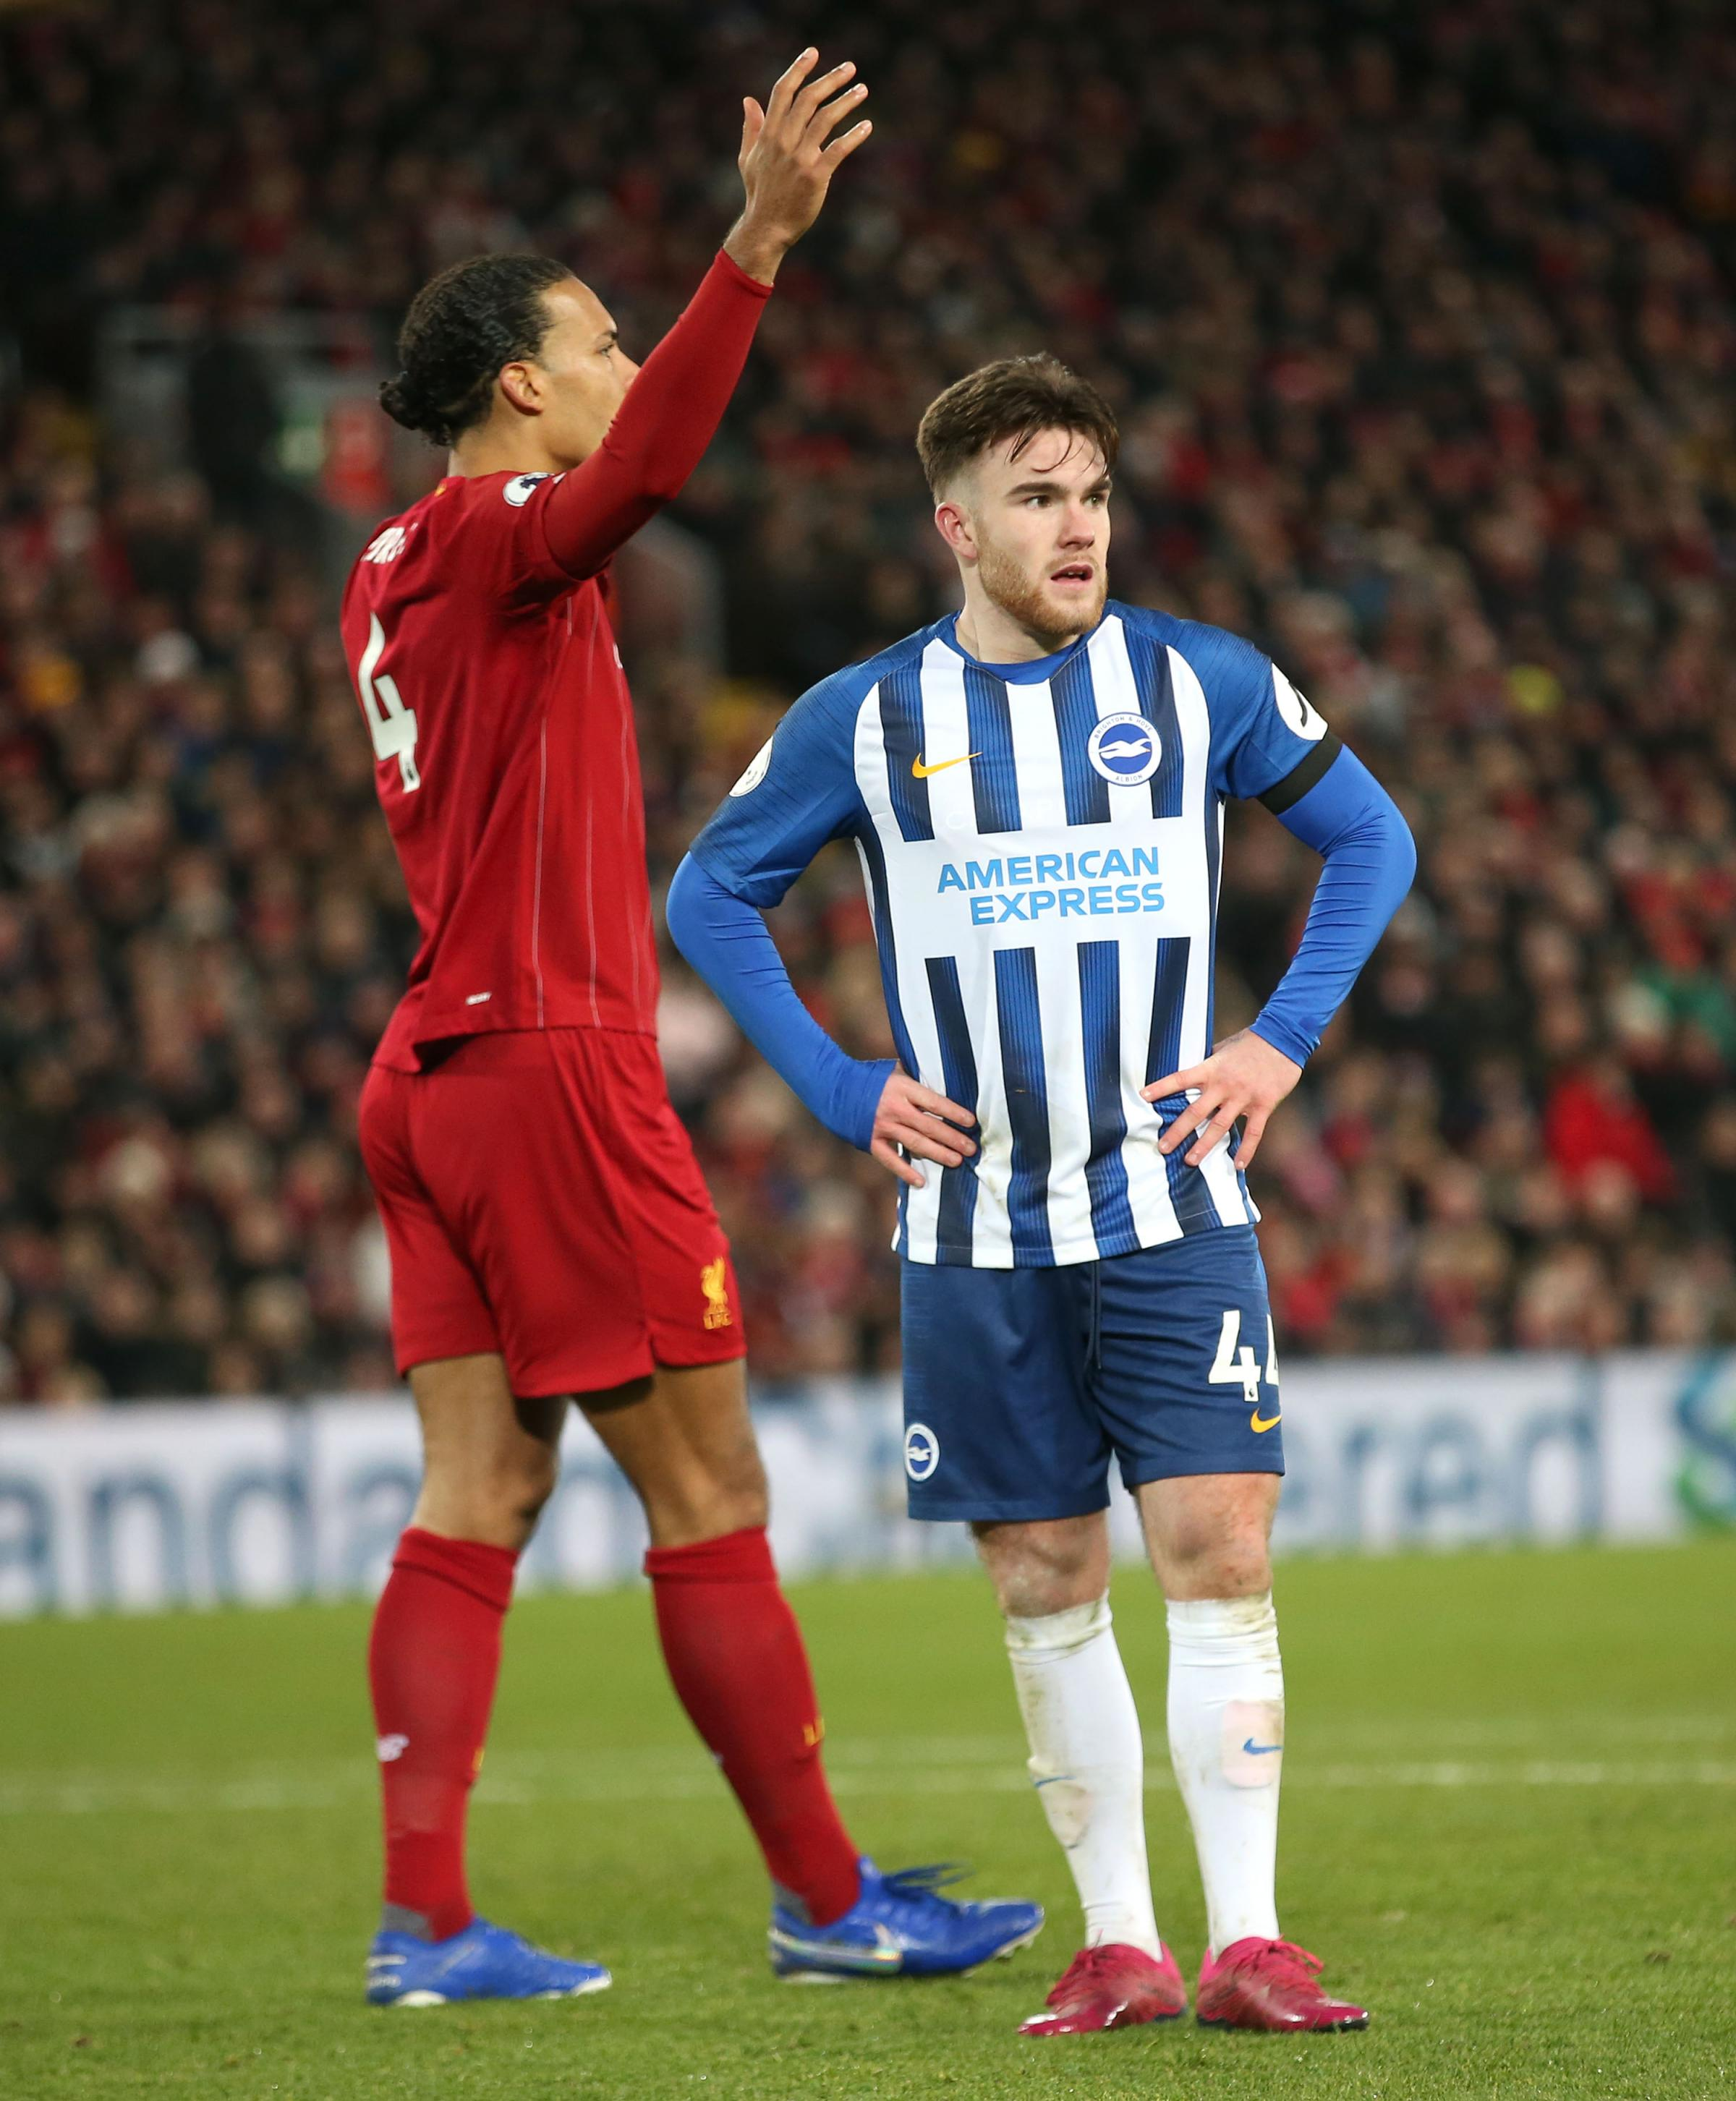 Albion injury update as Aaron Connolly rated 'doubtful